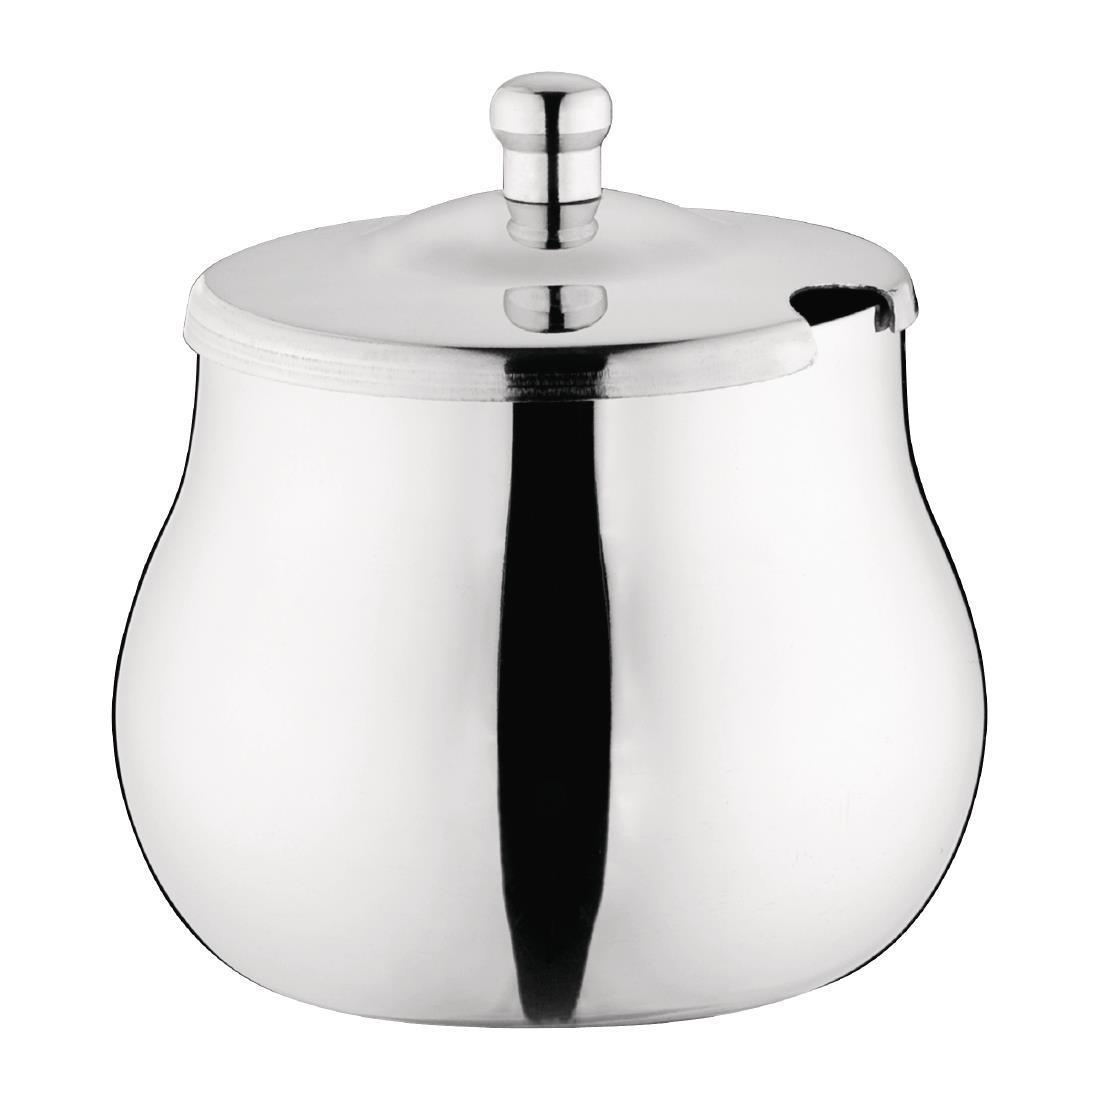 Olympia Arabian Sugar Bowl Stainless Steel 75mm